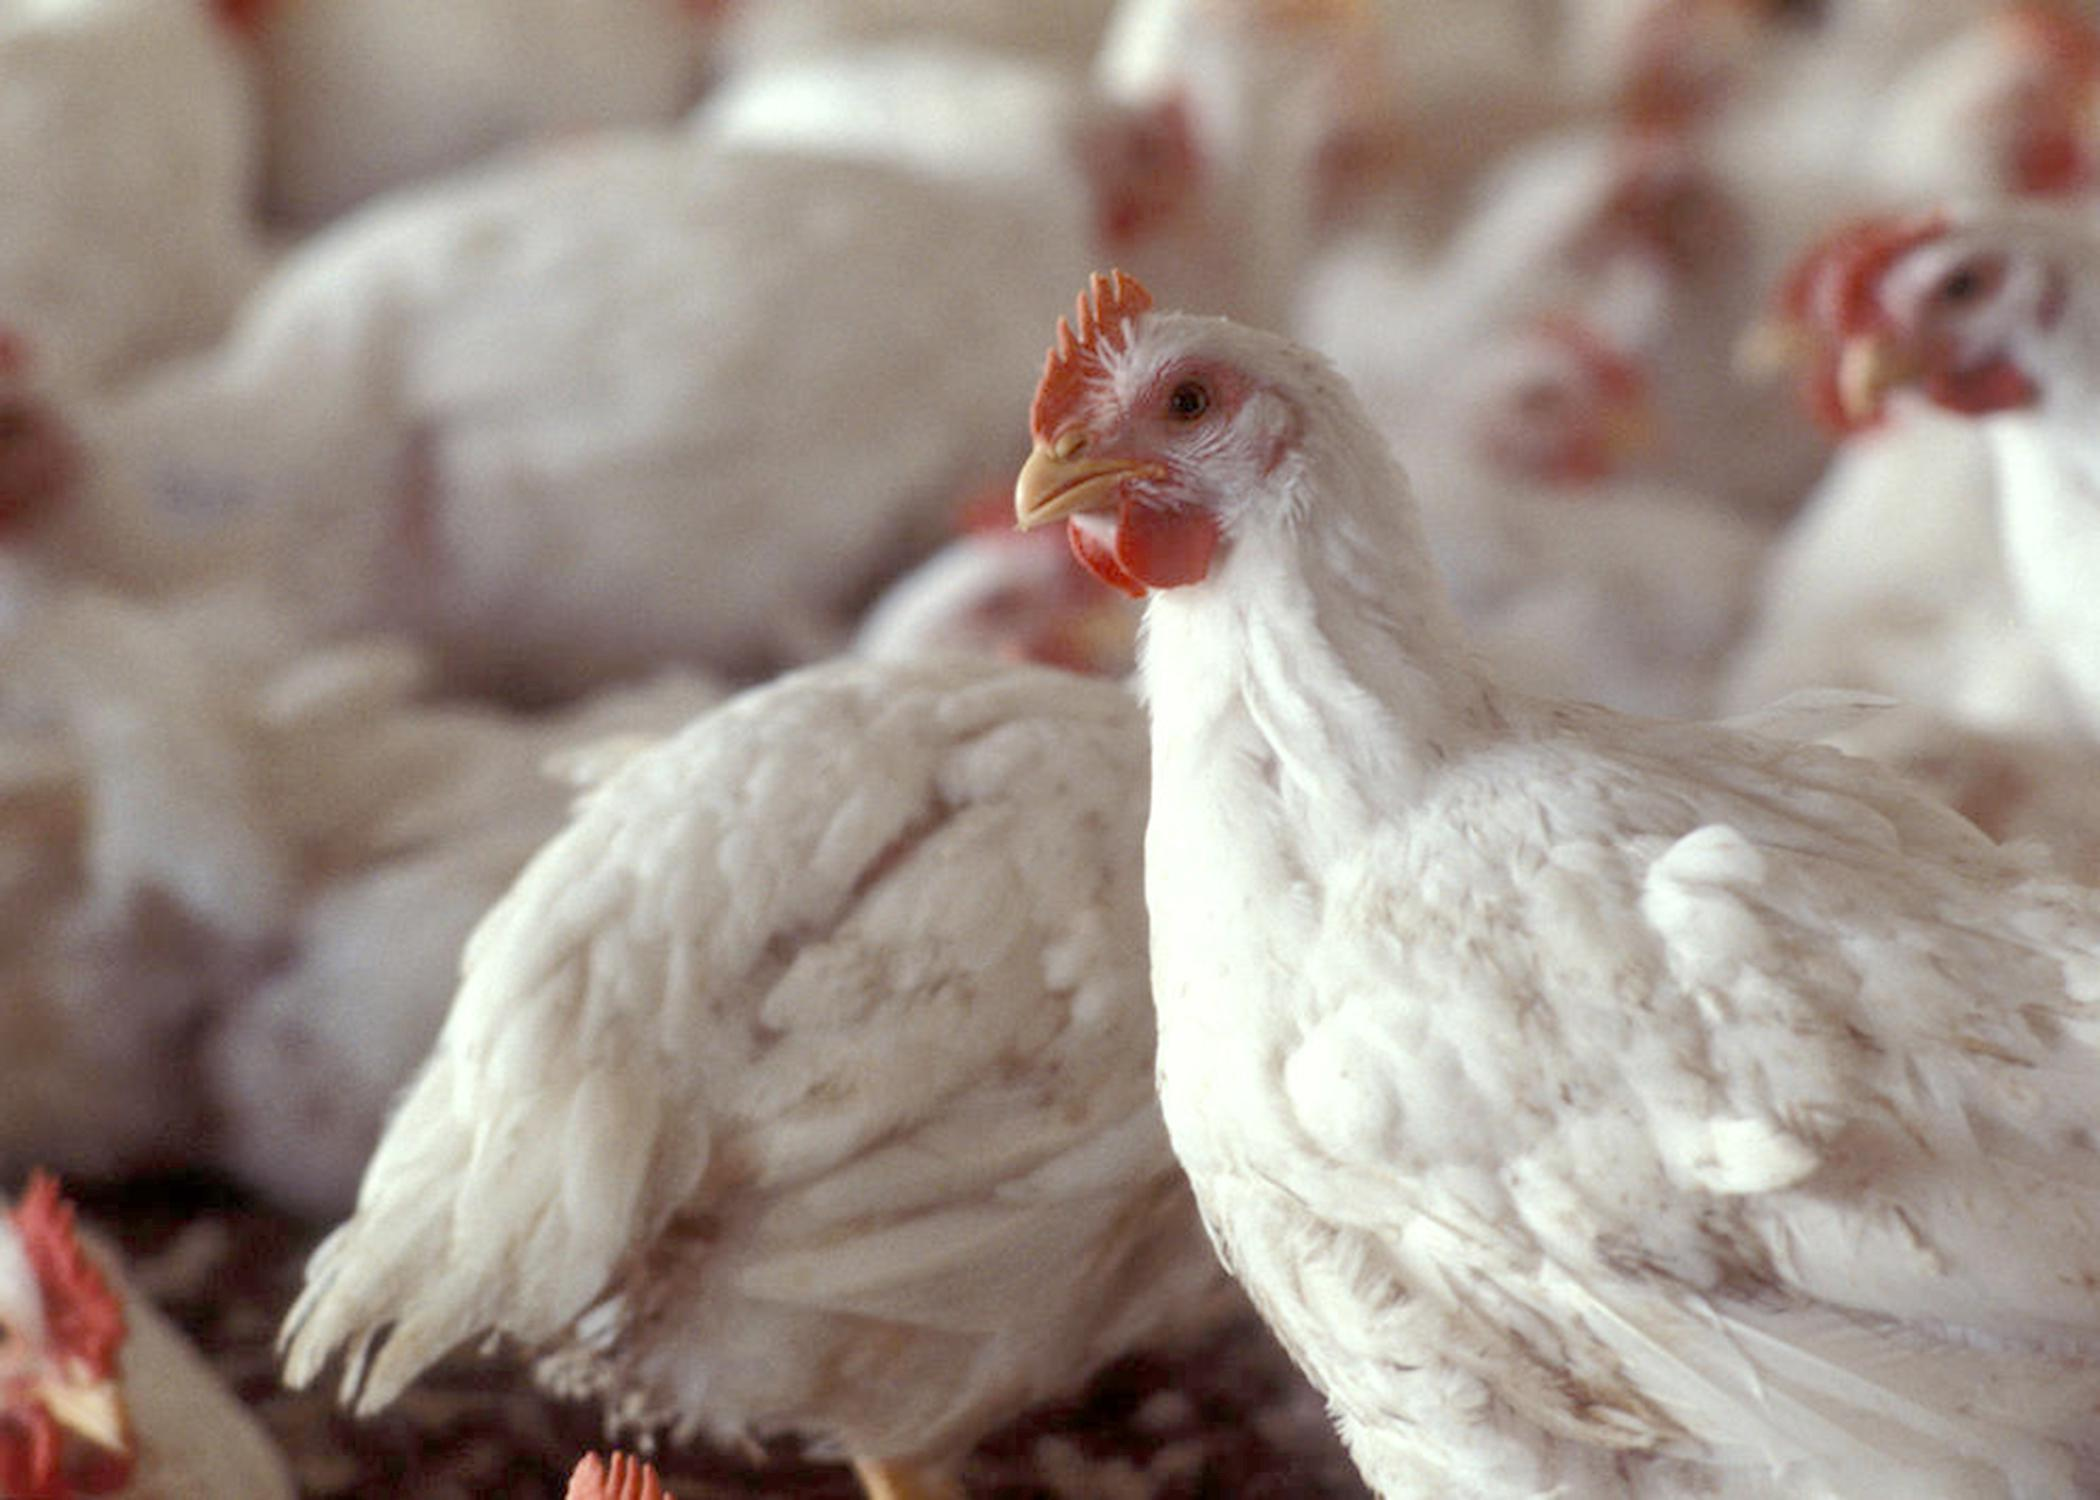 Poultry remains Mississippi's No. 1 agricultural commodity, with a preliminary estimated value of $2.7 billion. Broilers brought higher prices in 2013, bumping the industry's overall value by about 10 percent compared to 2012. (Photo by MSU Ag Communications)